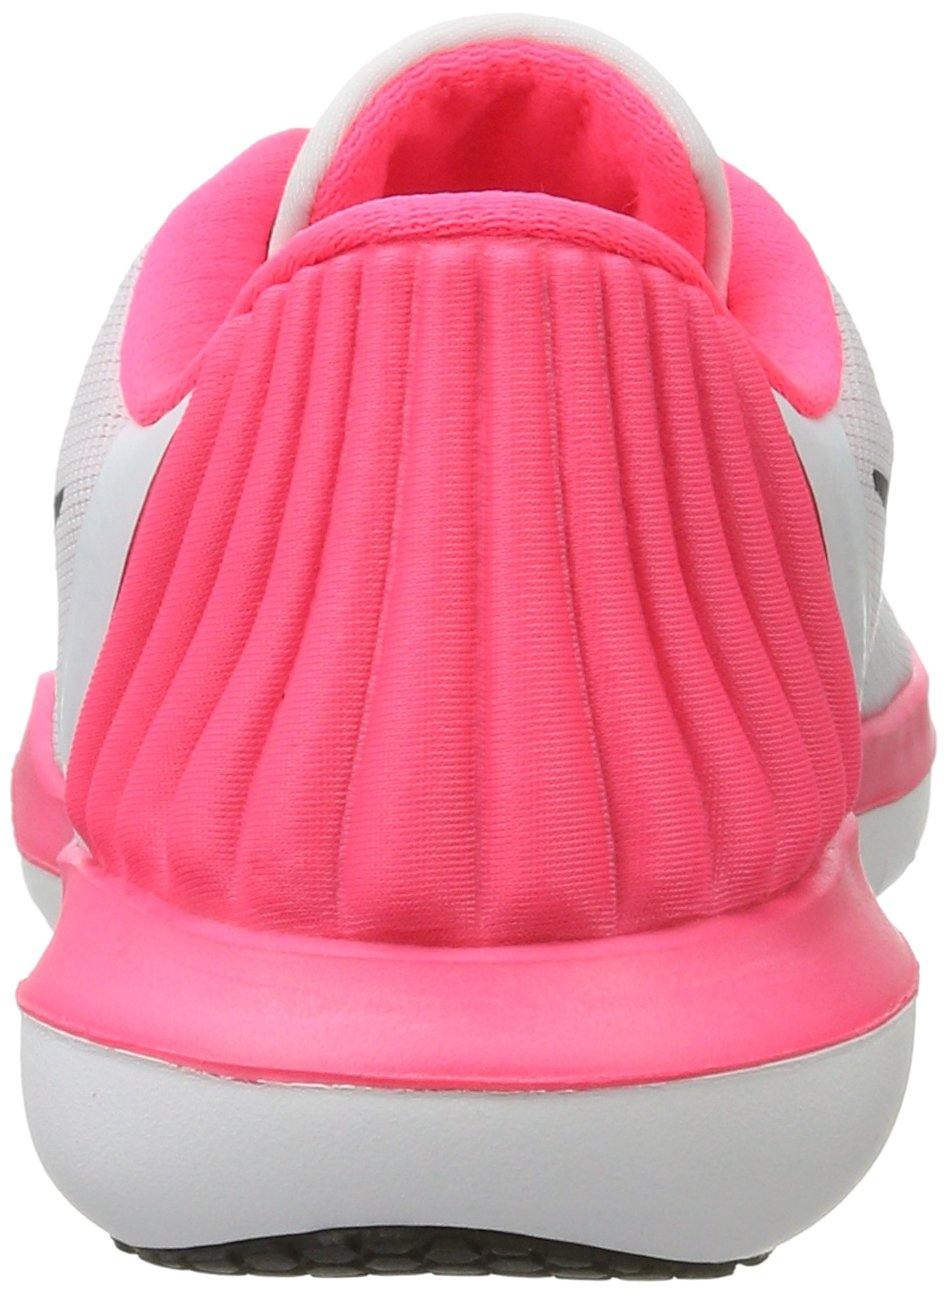 NIKE Women's Flex Supreme TR 5 Cross Training Shoe B01LPORWSW 10 B(M) US|Pure Platinum/Black/Racer Pink/Wolf Grey